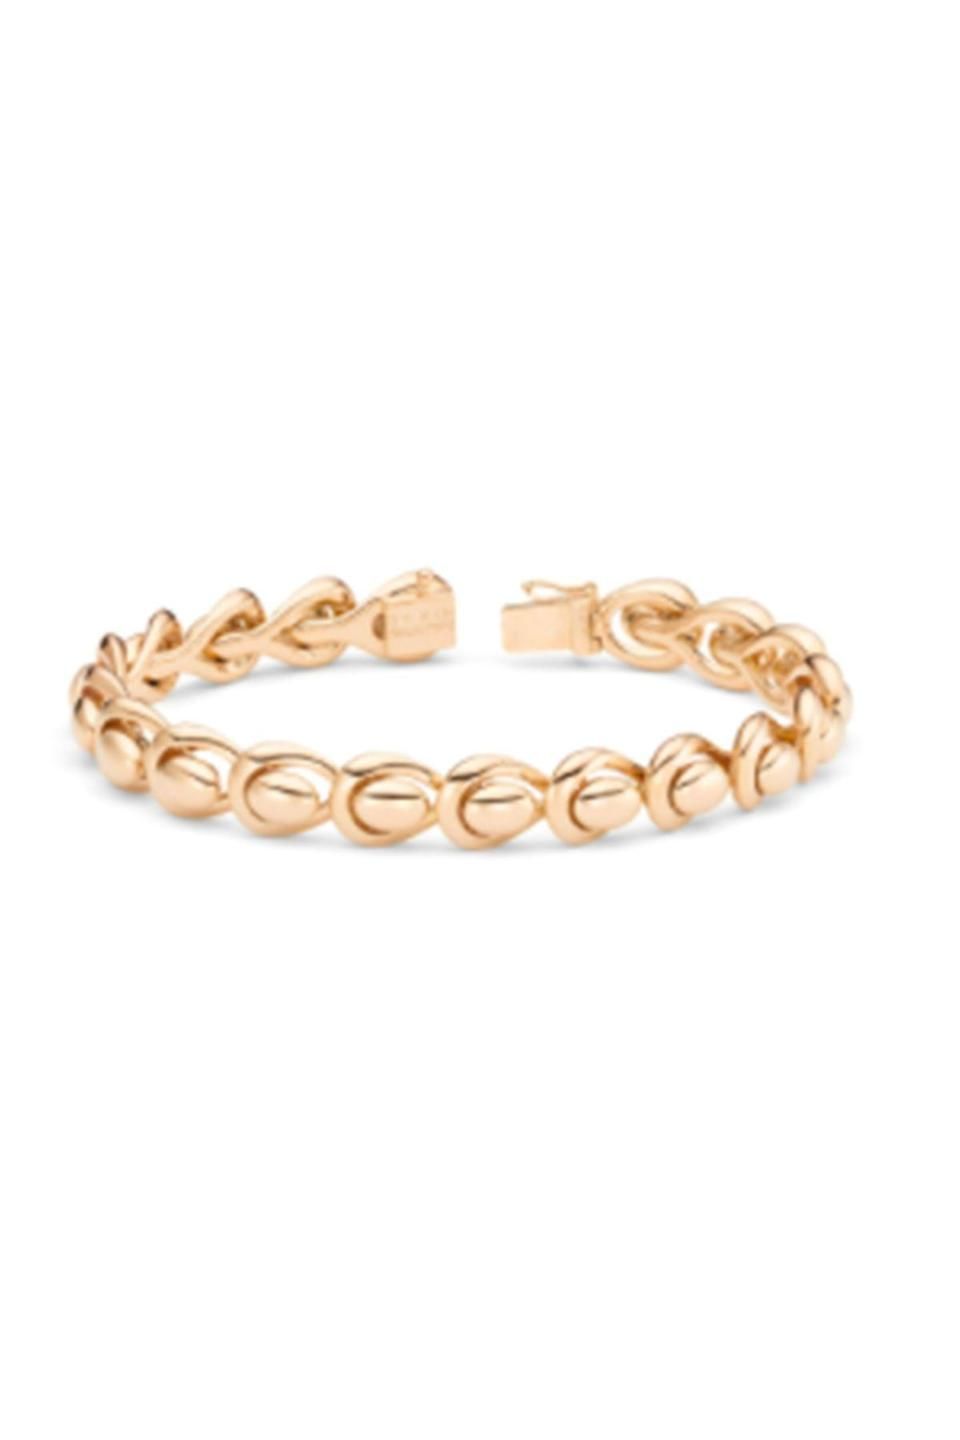 """<p><strong>By Kim</strong></p><p>wempe.com</p><p><a href=""""https://www2.wempe.com/en/jewelry/brands/by-kim/feel-me-by-kim/armband_50ab0317"""" rel=""""nofollow noopener"""" target=""""_blank"""" data-ylk=""""slk:Shop Now"""" class=""""link rapid-noclick-resp"""">Shop Now</a></p><p>This armband by Wempe is so well-designed that you'll forget you are wearing it... until someone compliments your great jewelry. </p>"""